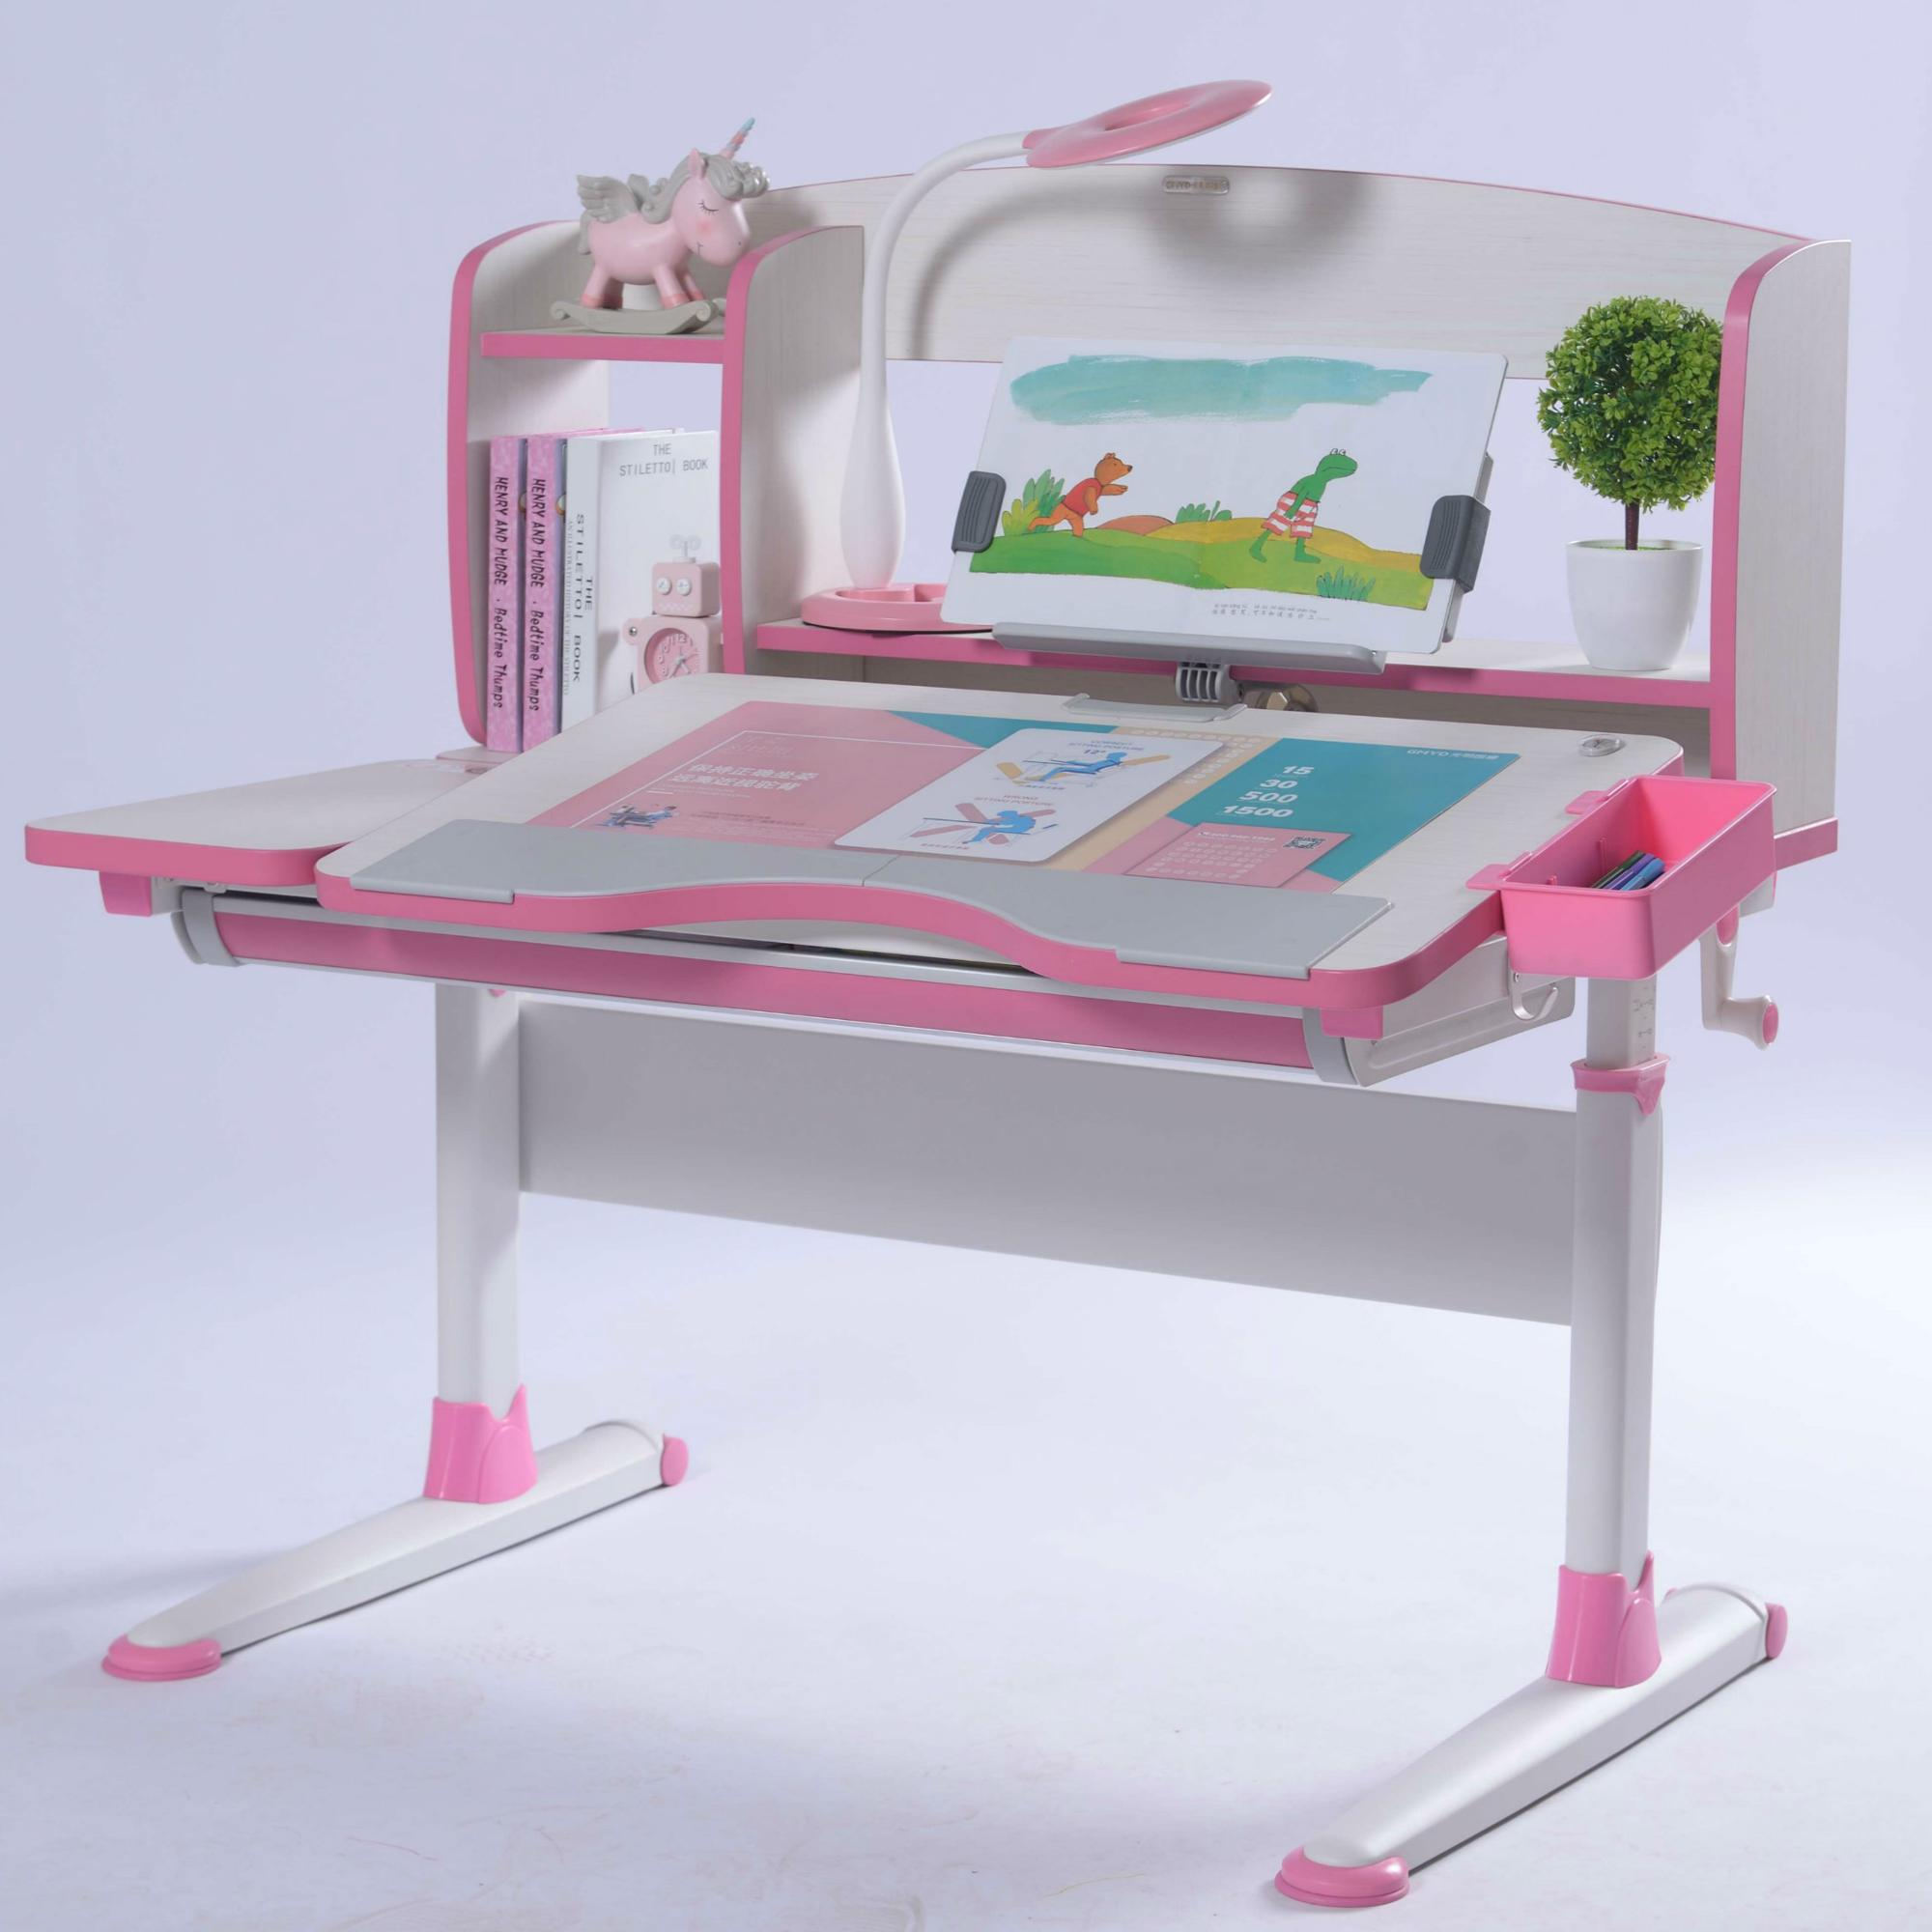 Height adjustable study desk for children